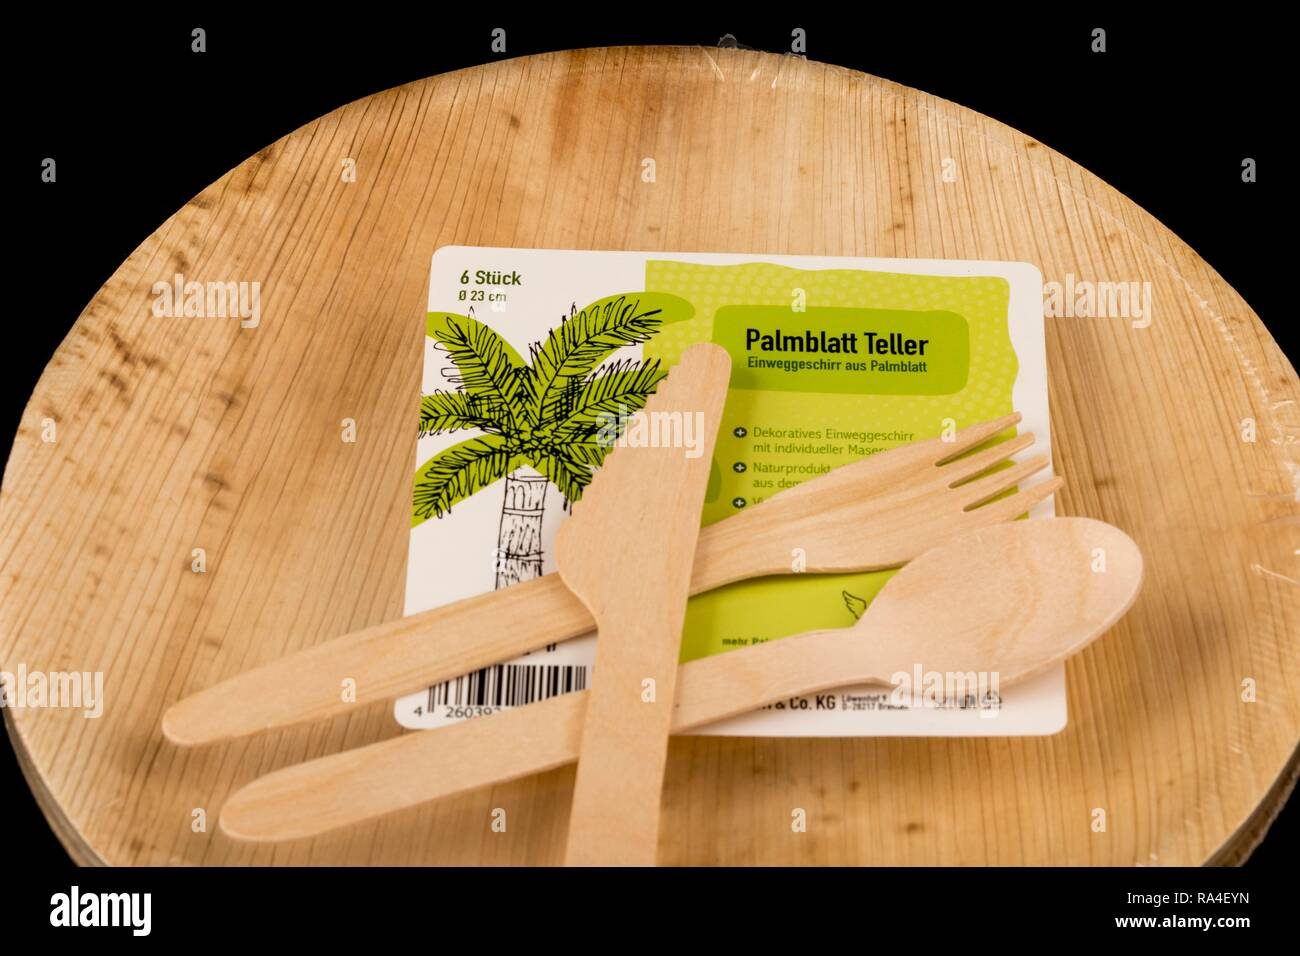 Disposable wooden cutlery, recyclable, palm leaf plate, environmentally friendly - Stock Image